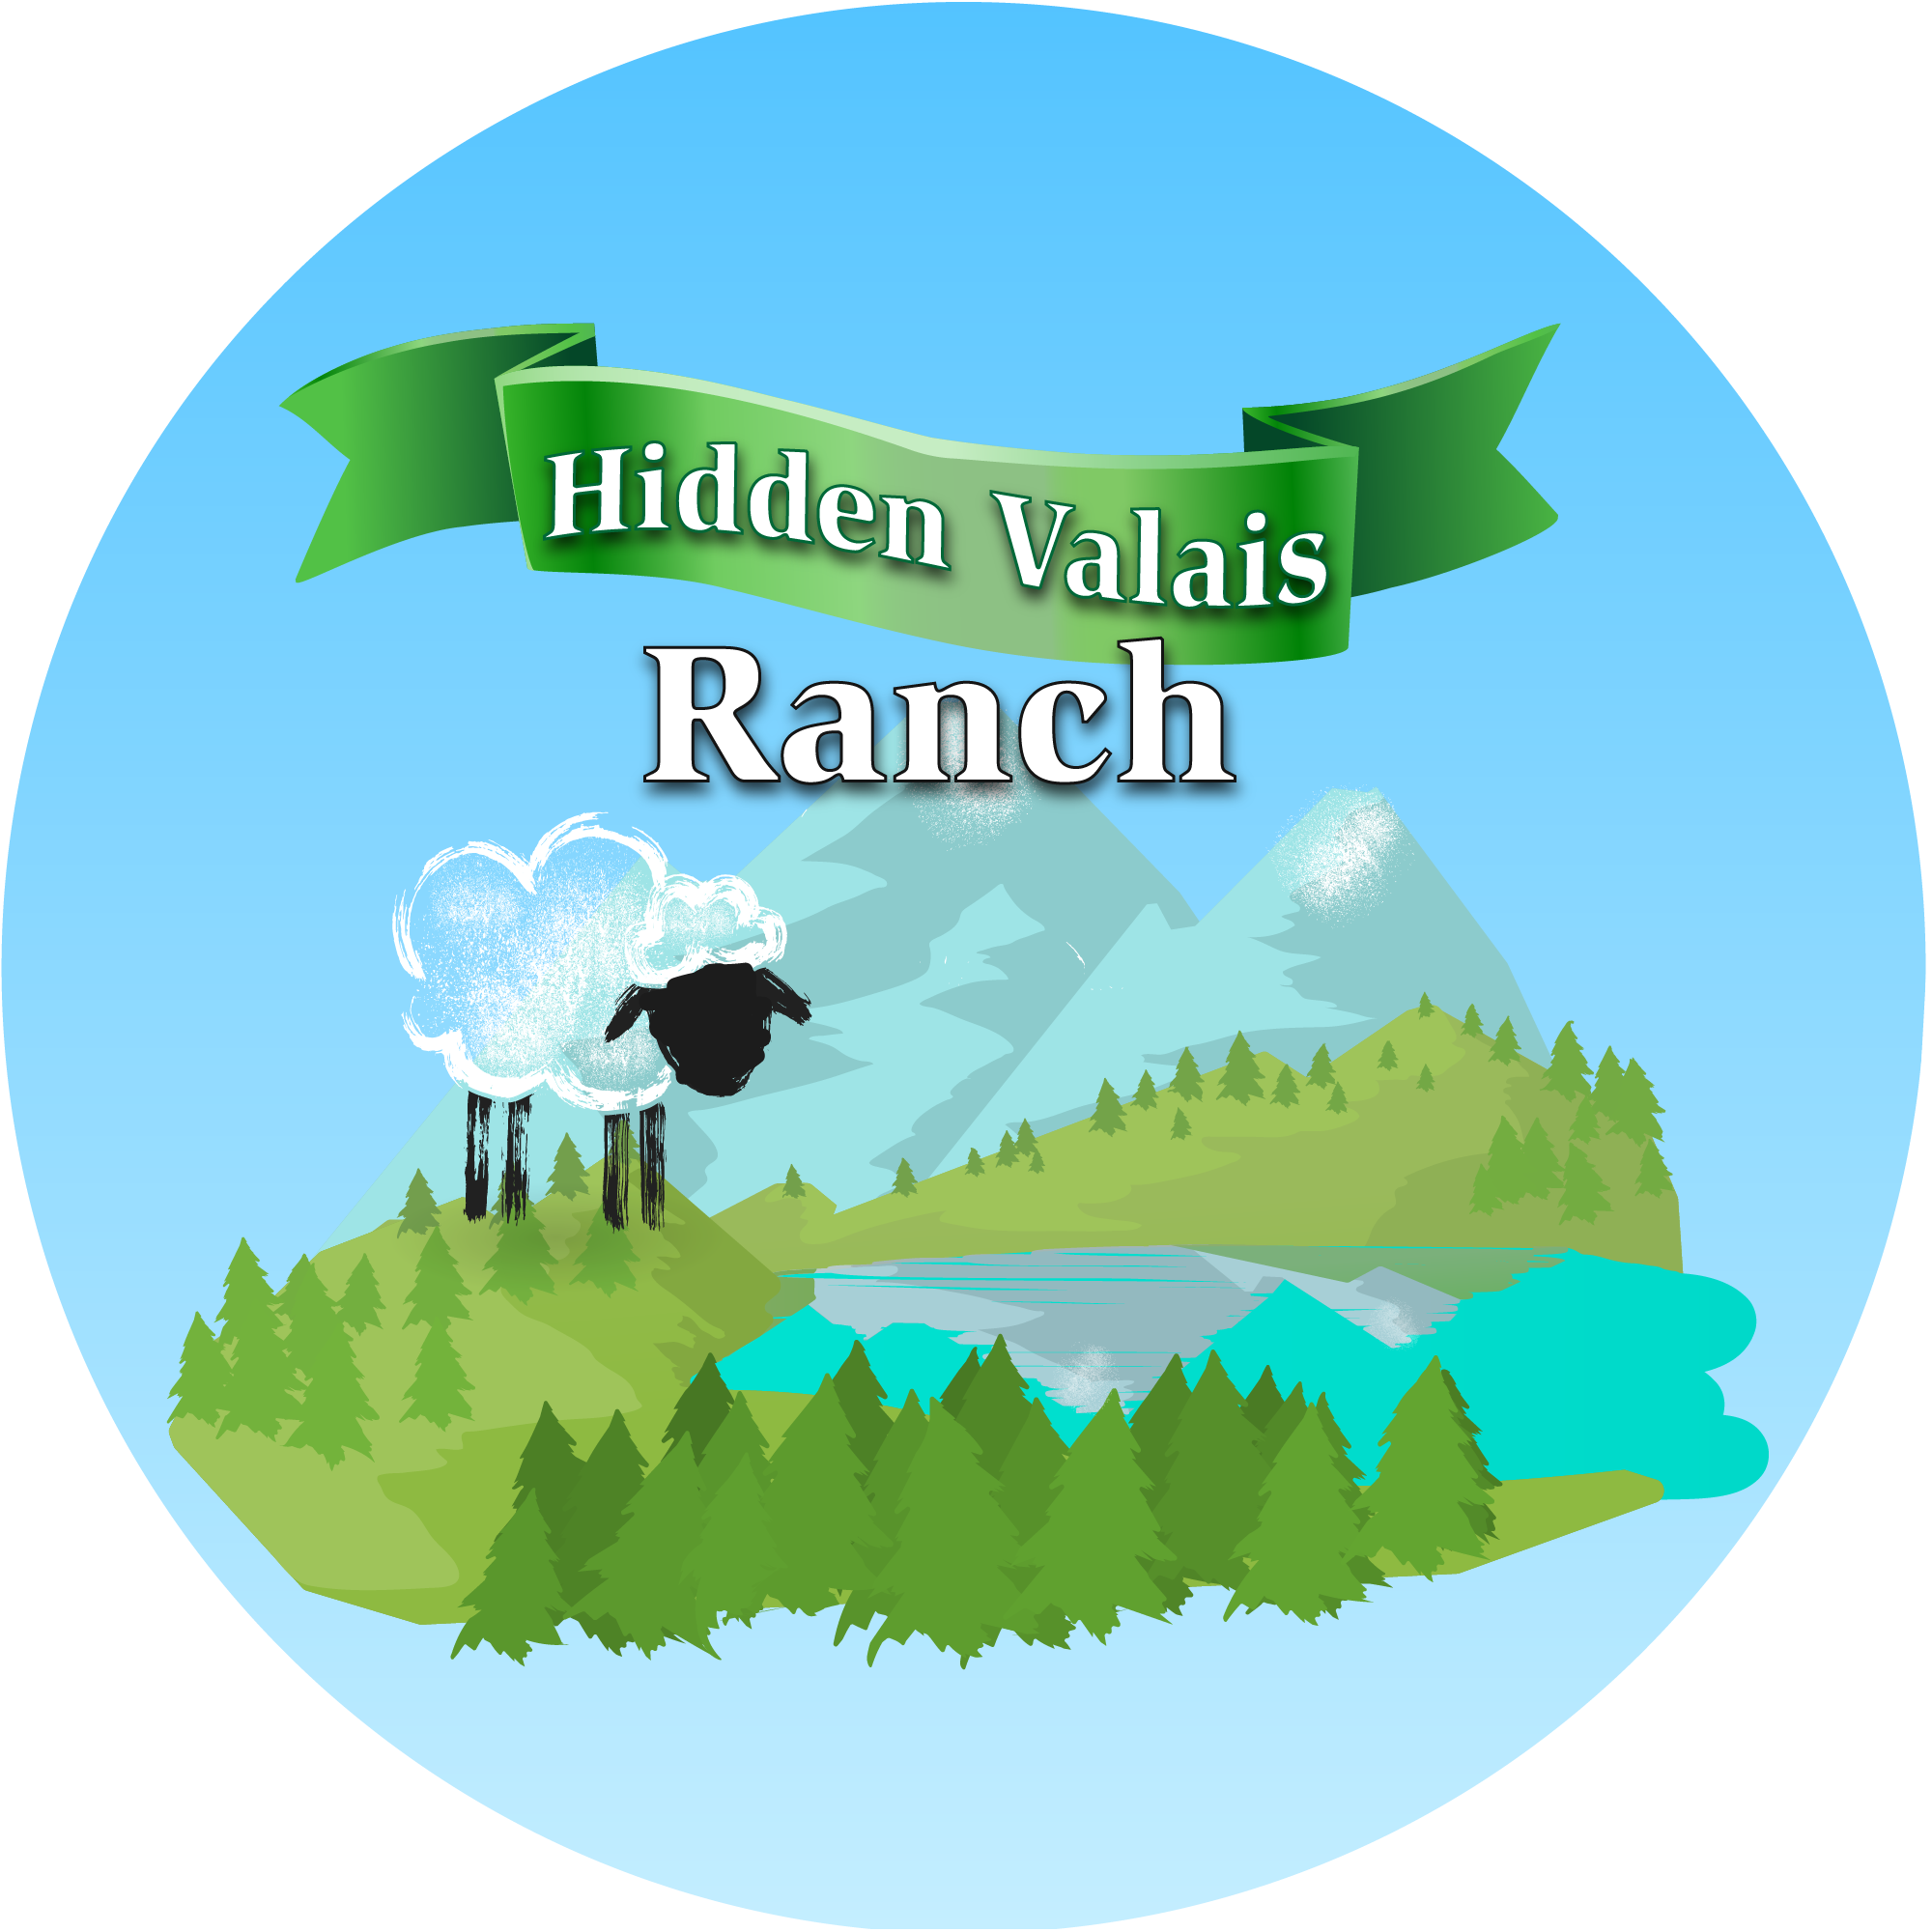 Hidden Valais Ranch